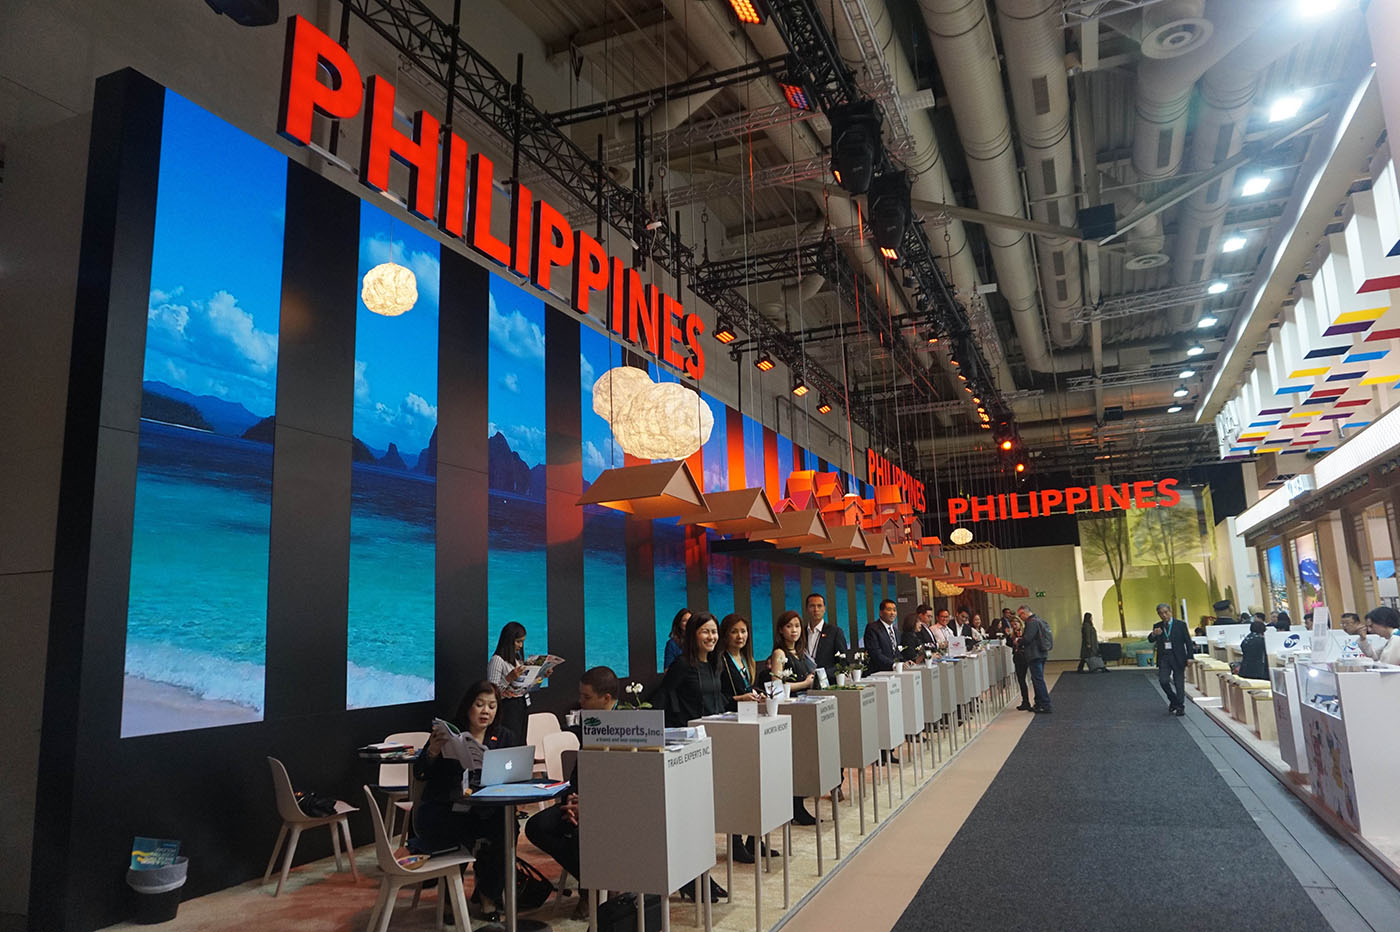 MORE FUN IN THE PHILIPPINES. A look at the booth of the Philippines during the trade fair in Berlin.